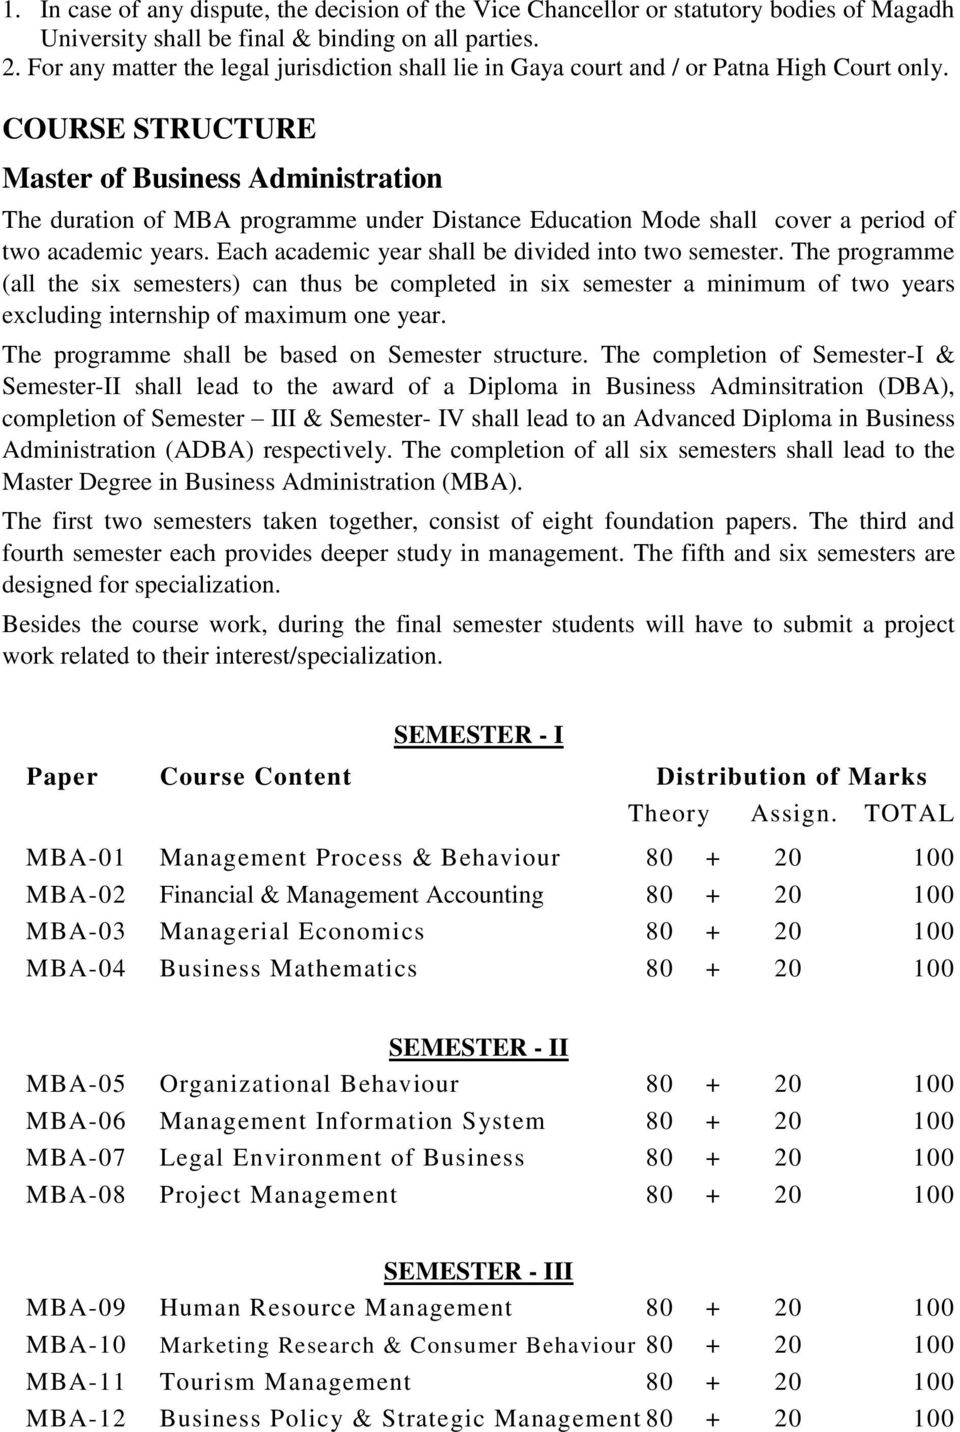 COURSE STRUCTURE Master of Business Administration The duration of MBA programme under Distance Education Mode shall cover a period of two academic years.